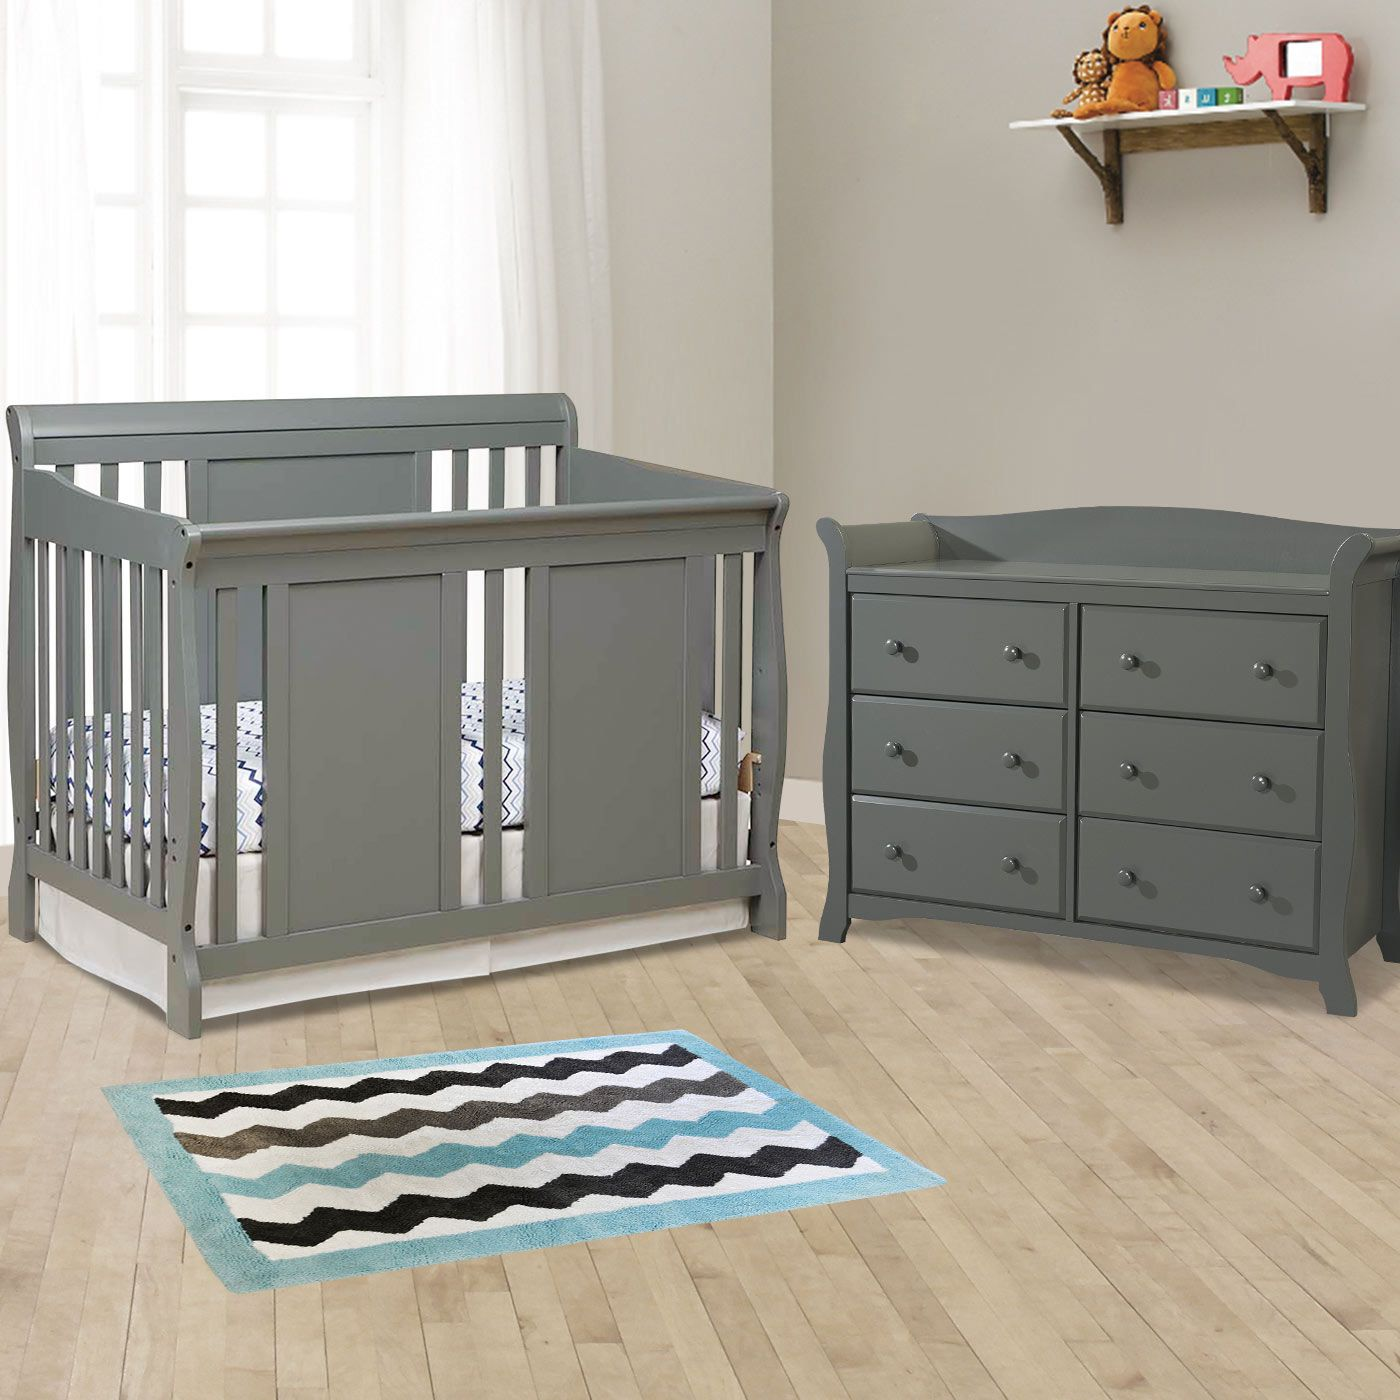 Storkcraft 2 Piece Nursery Set Verona Convertible Crib And